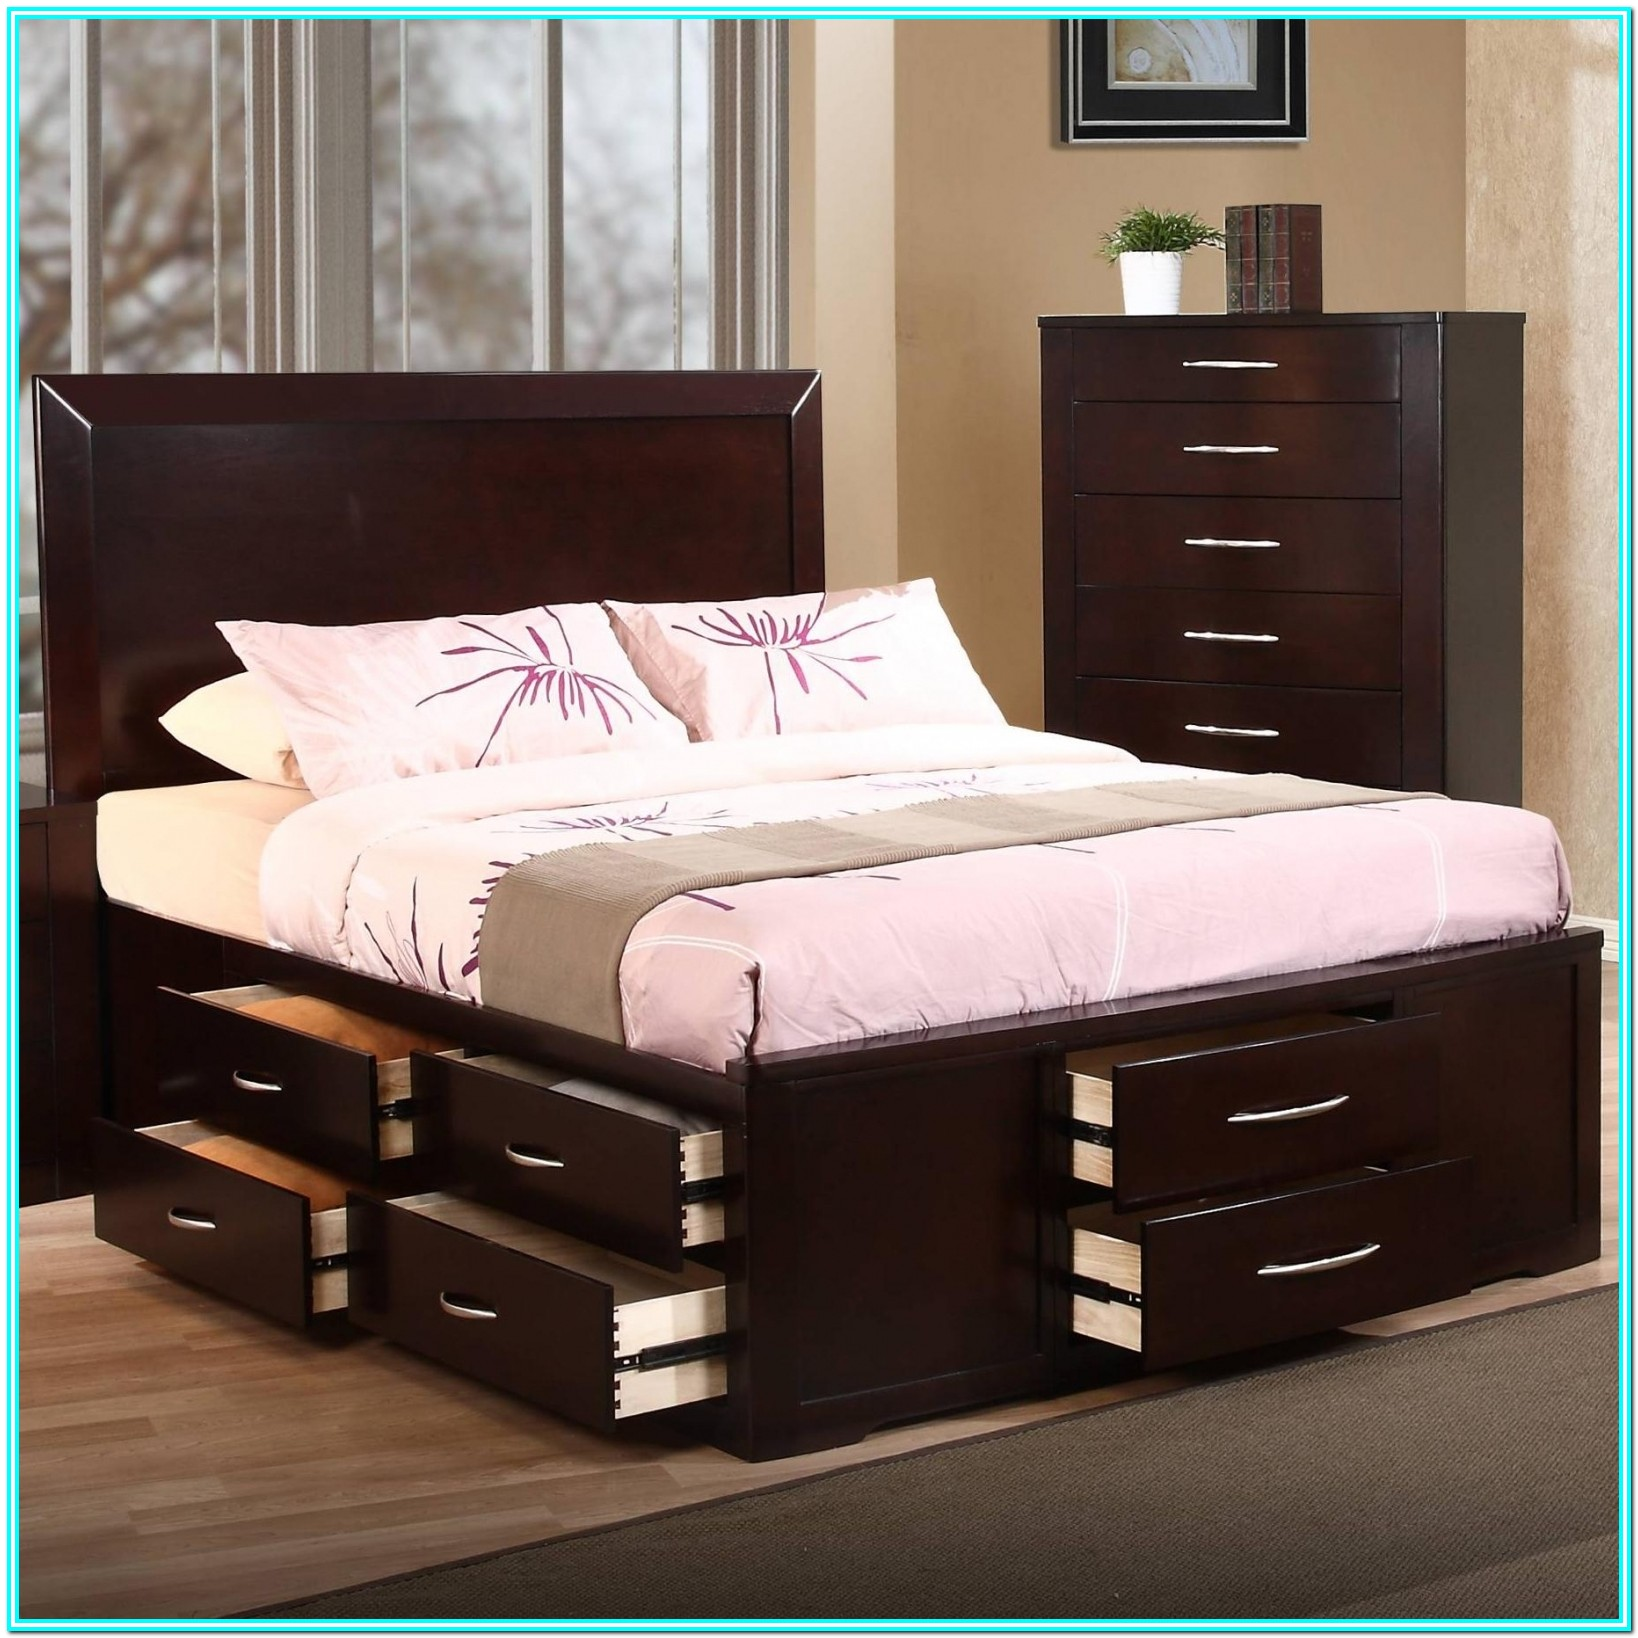 Platform Bed With Drawers Under